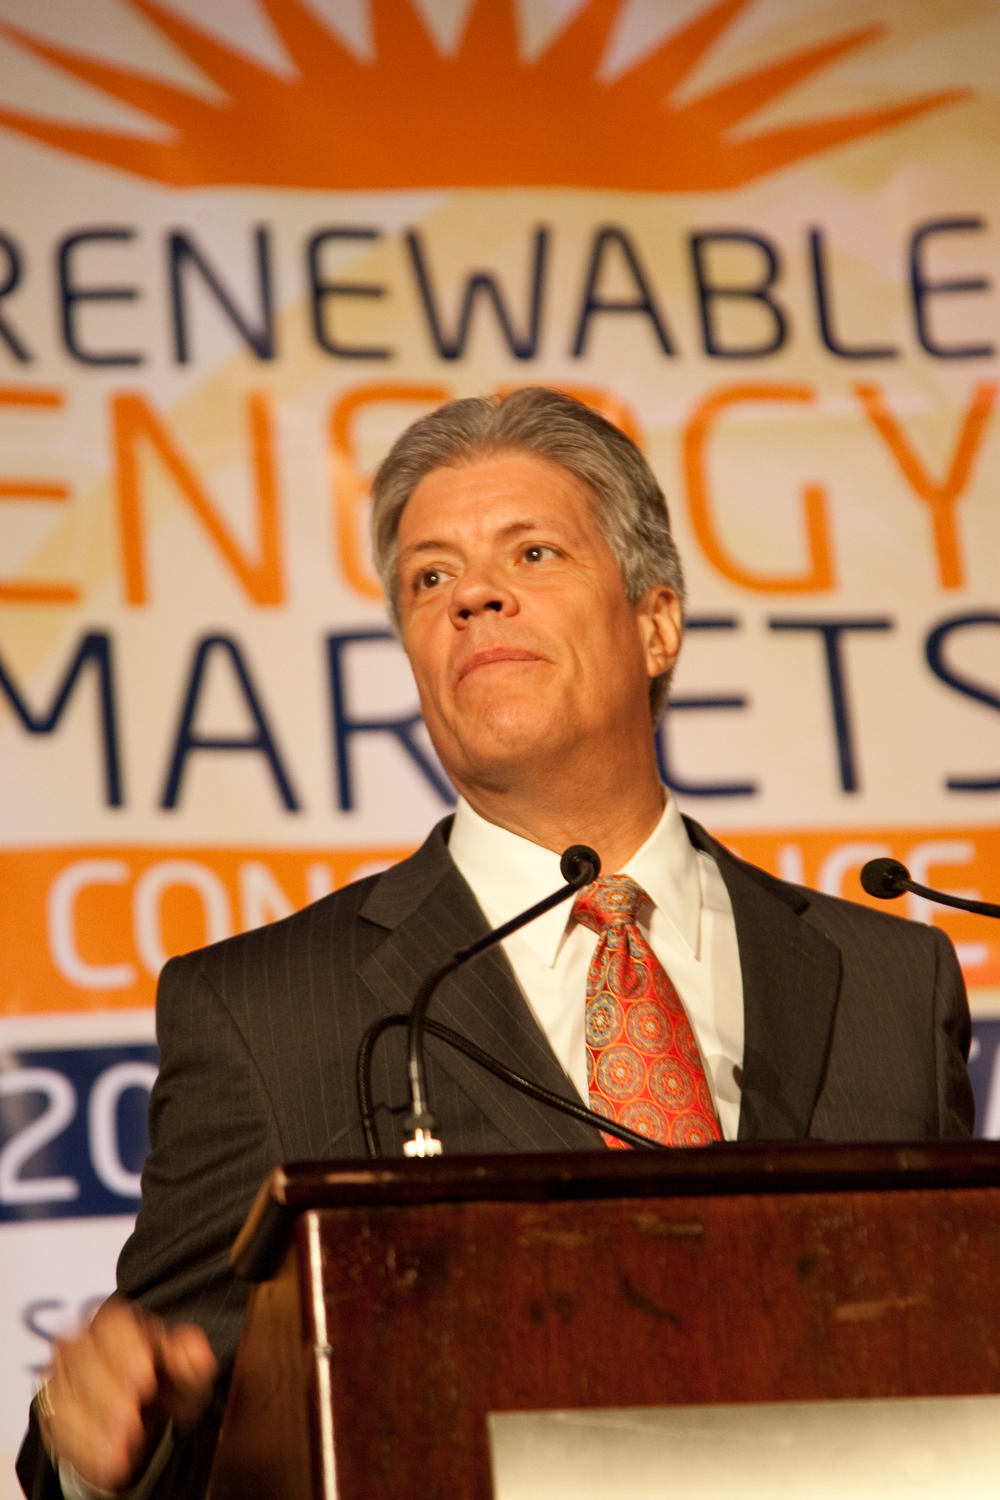 2090914renewableenergy20323.jpg